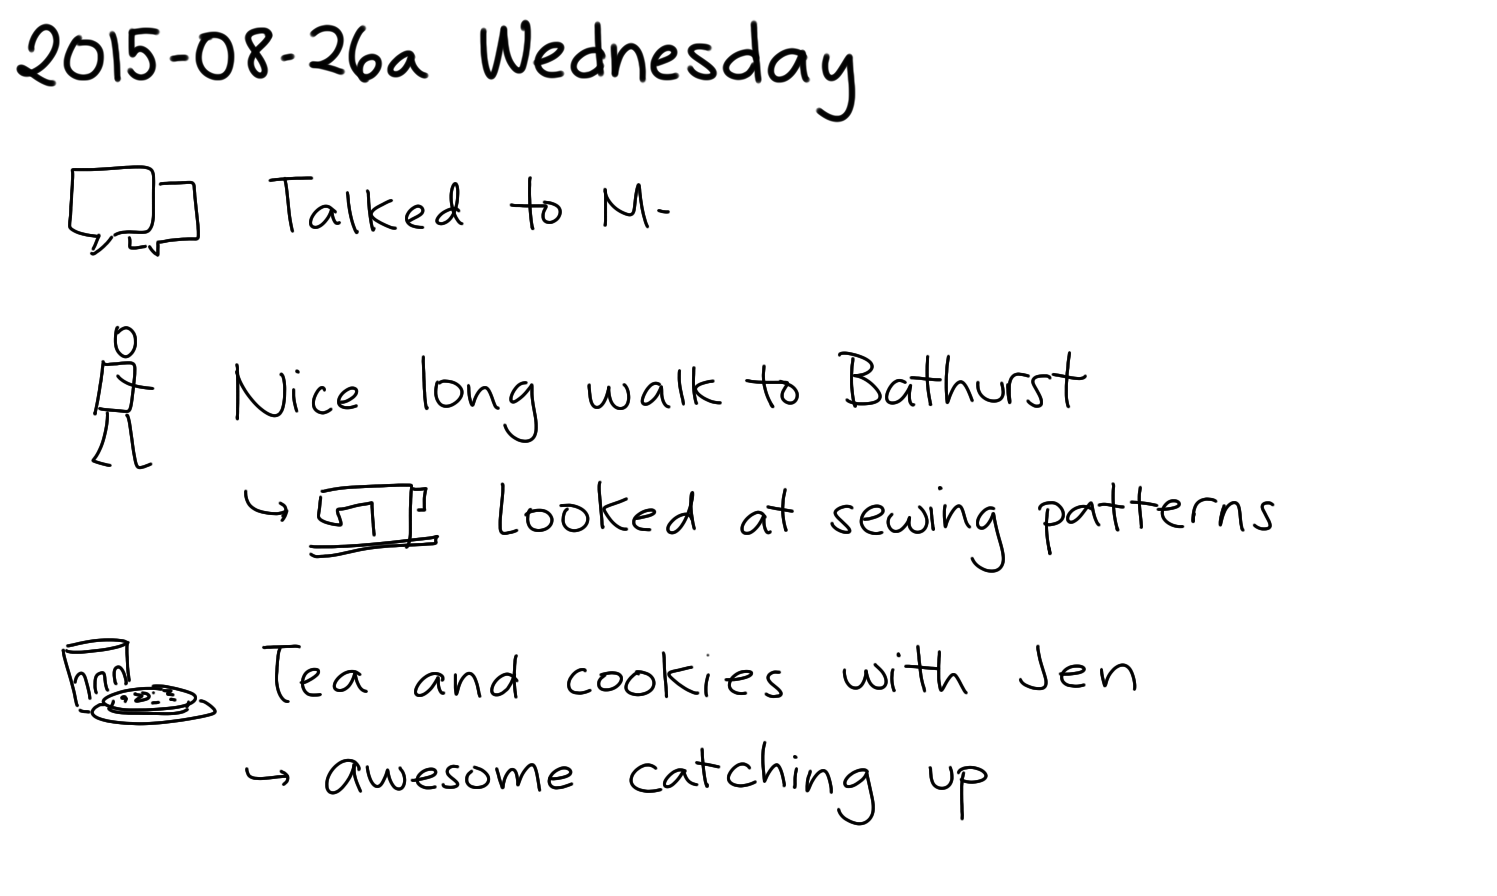 2015-08-26a Wednesday -- index card #journal.png